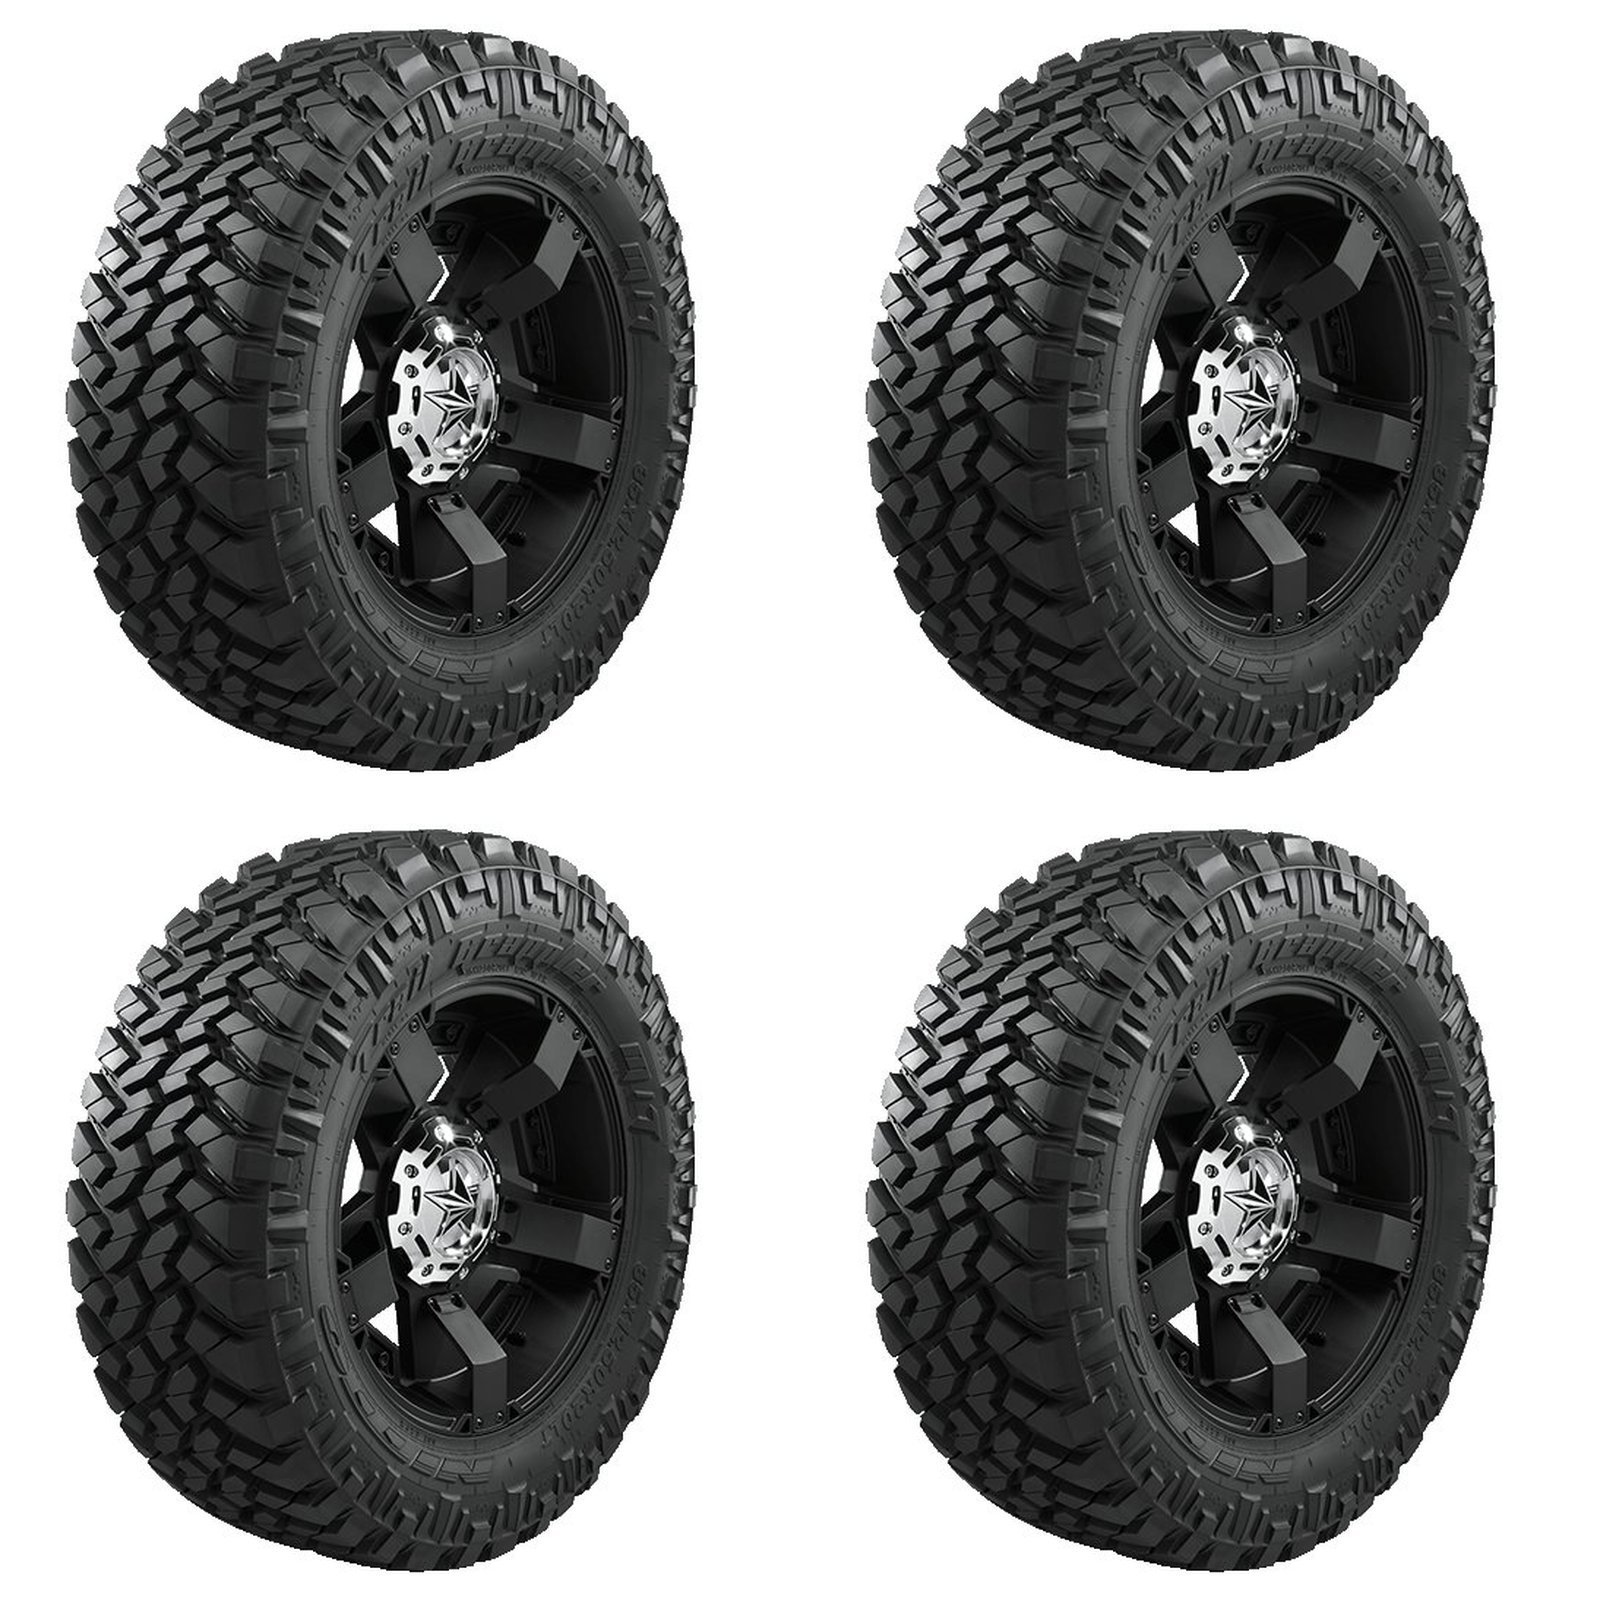 Nitto Off Road Tires >> Details About 4x Nitto Lt285 70r17 Trail Grappler Off Road Truck Suv Tires M T A S 121q 10ply